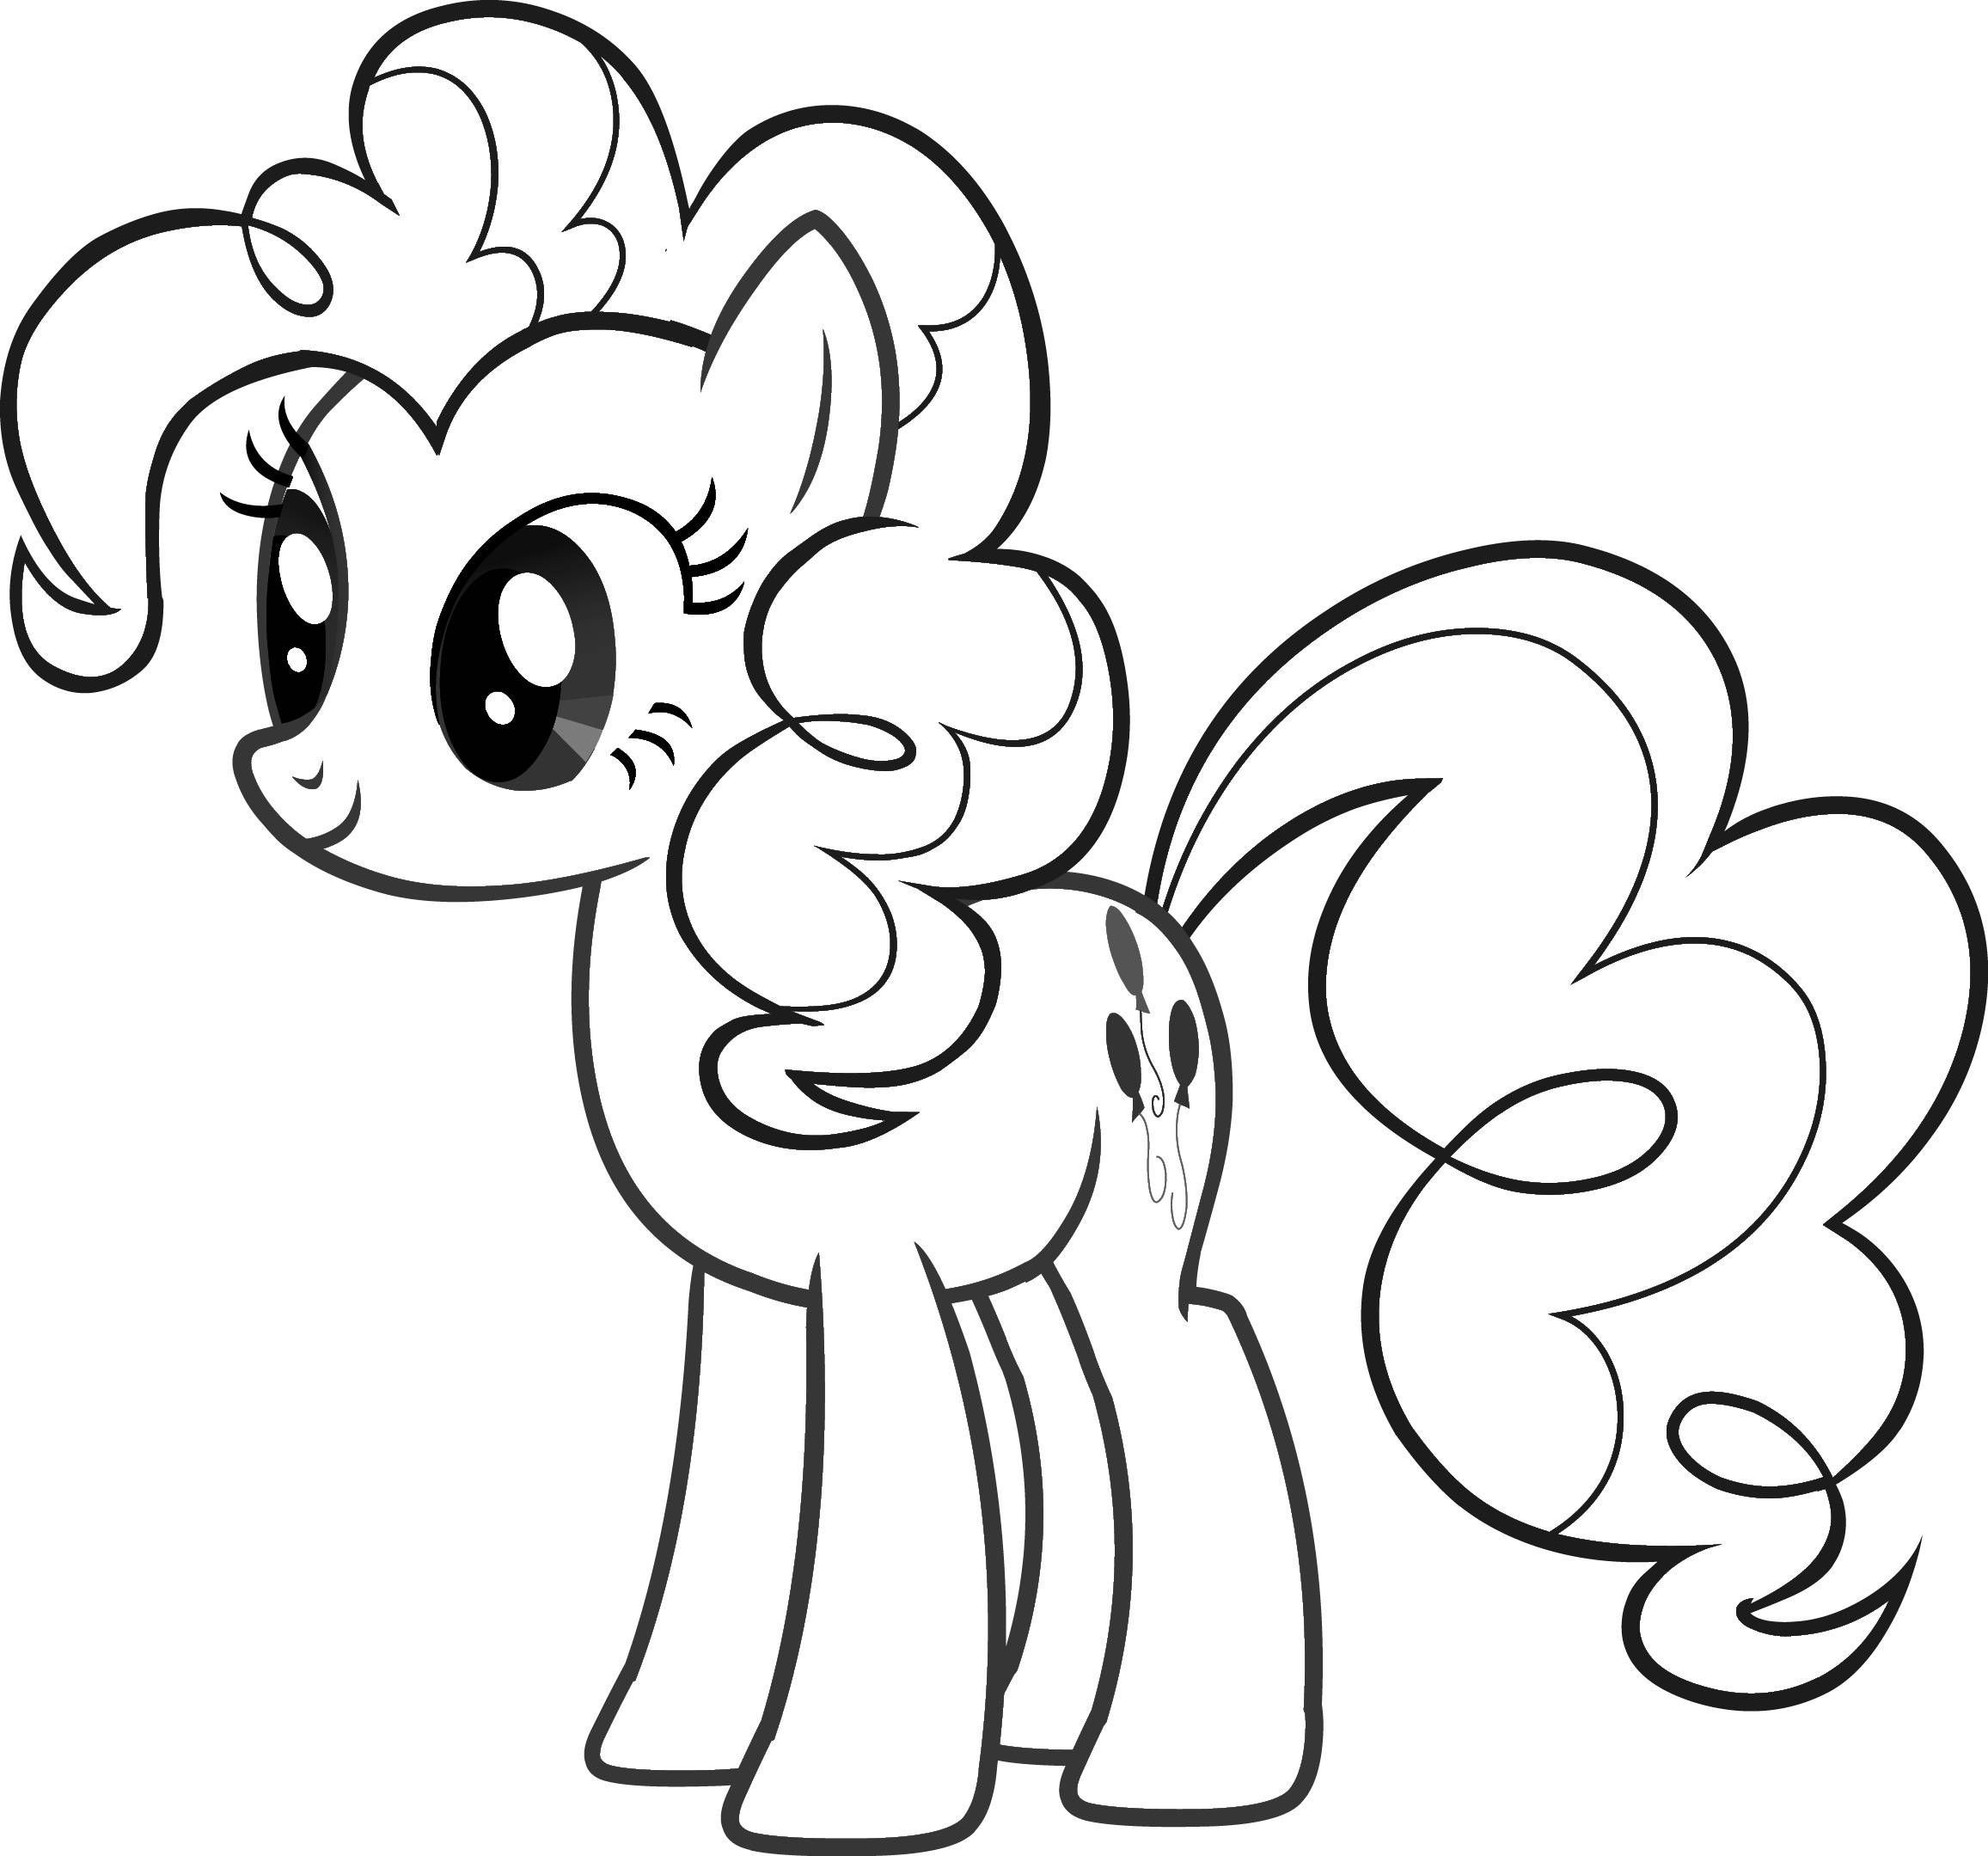 Best ideas about My Little Pony Coloring Pages For Kids . Save or Pin The 2011 Ford Mustang Pony Package Kopykake Now.